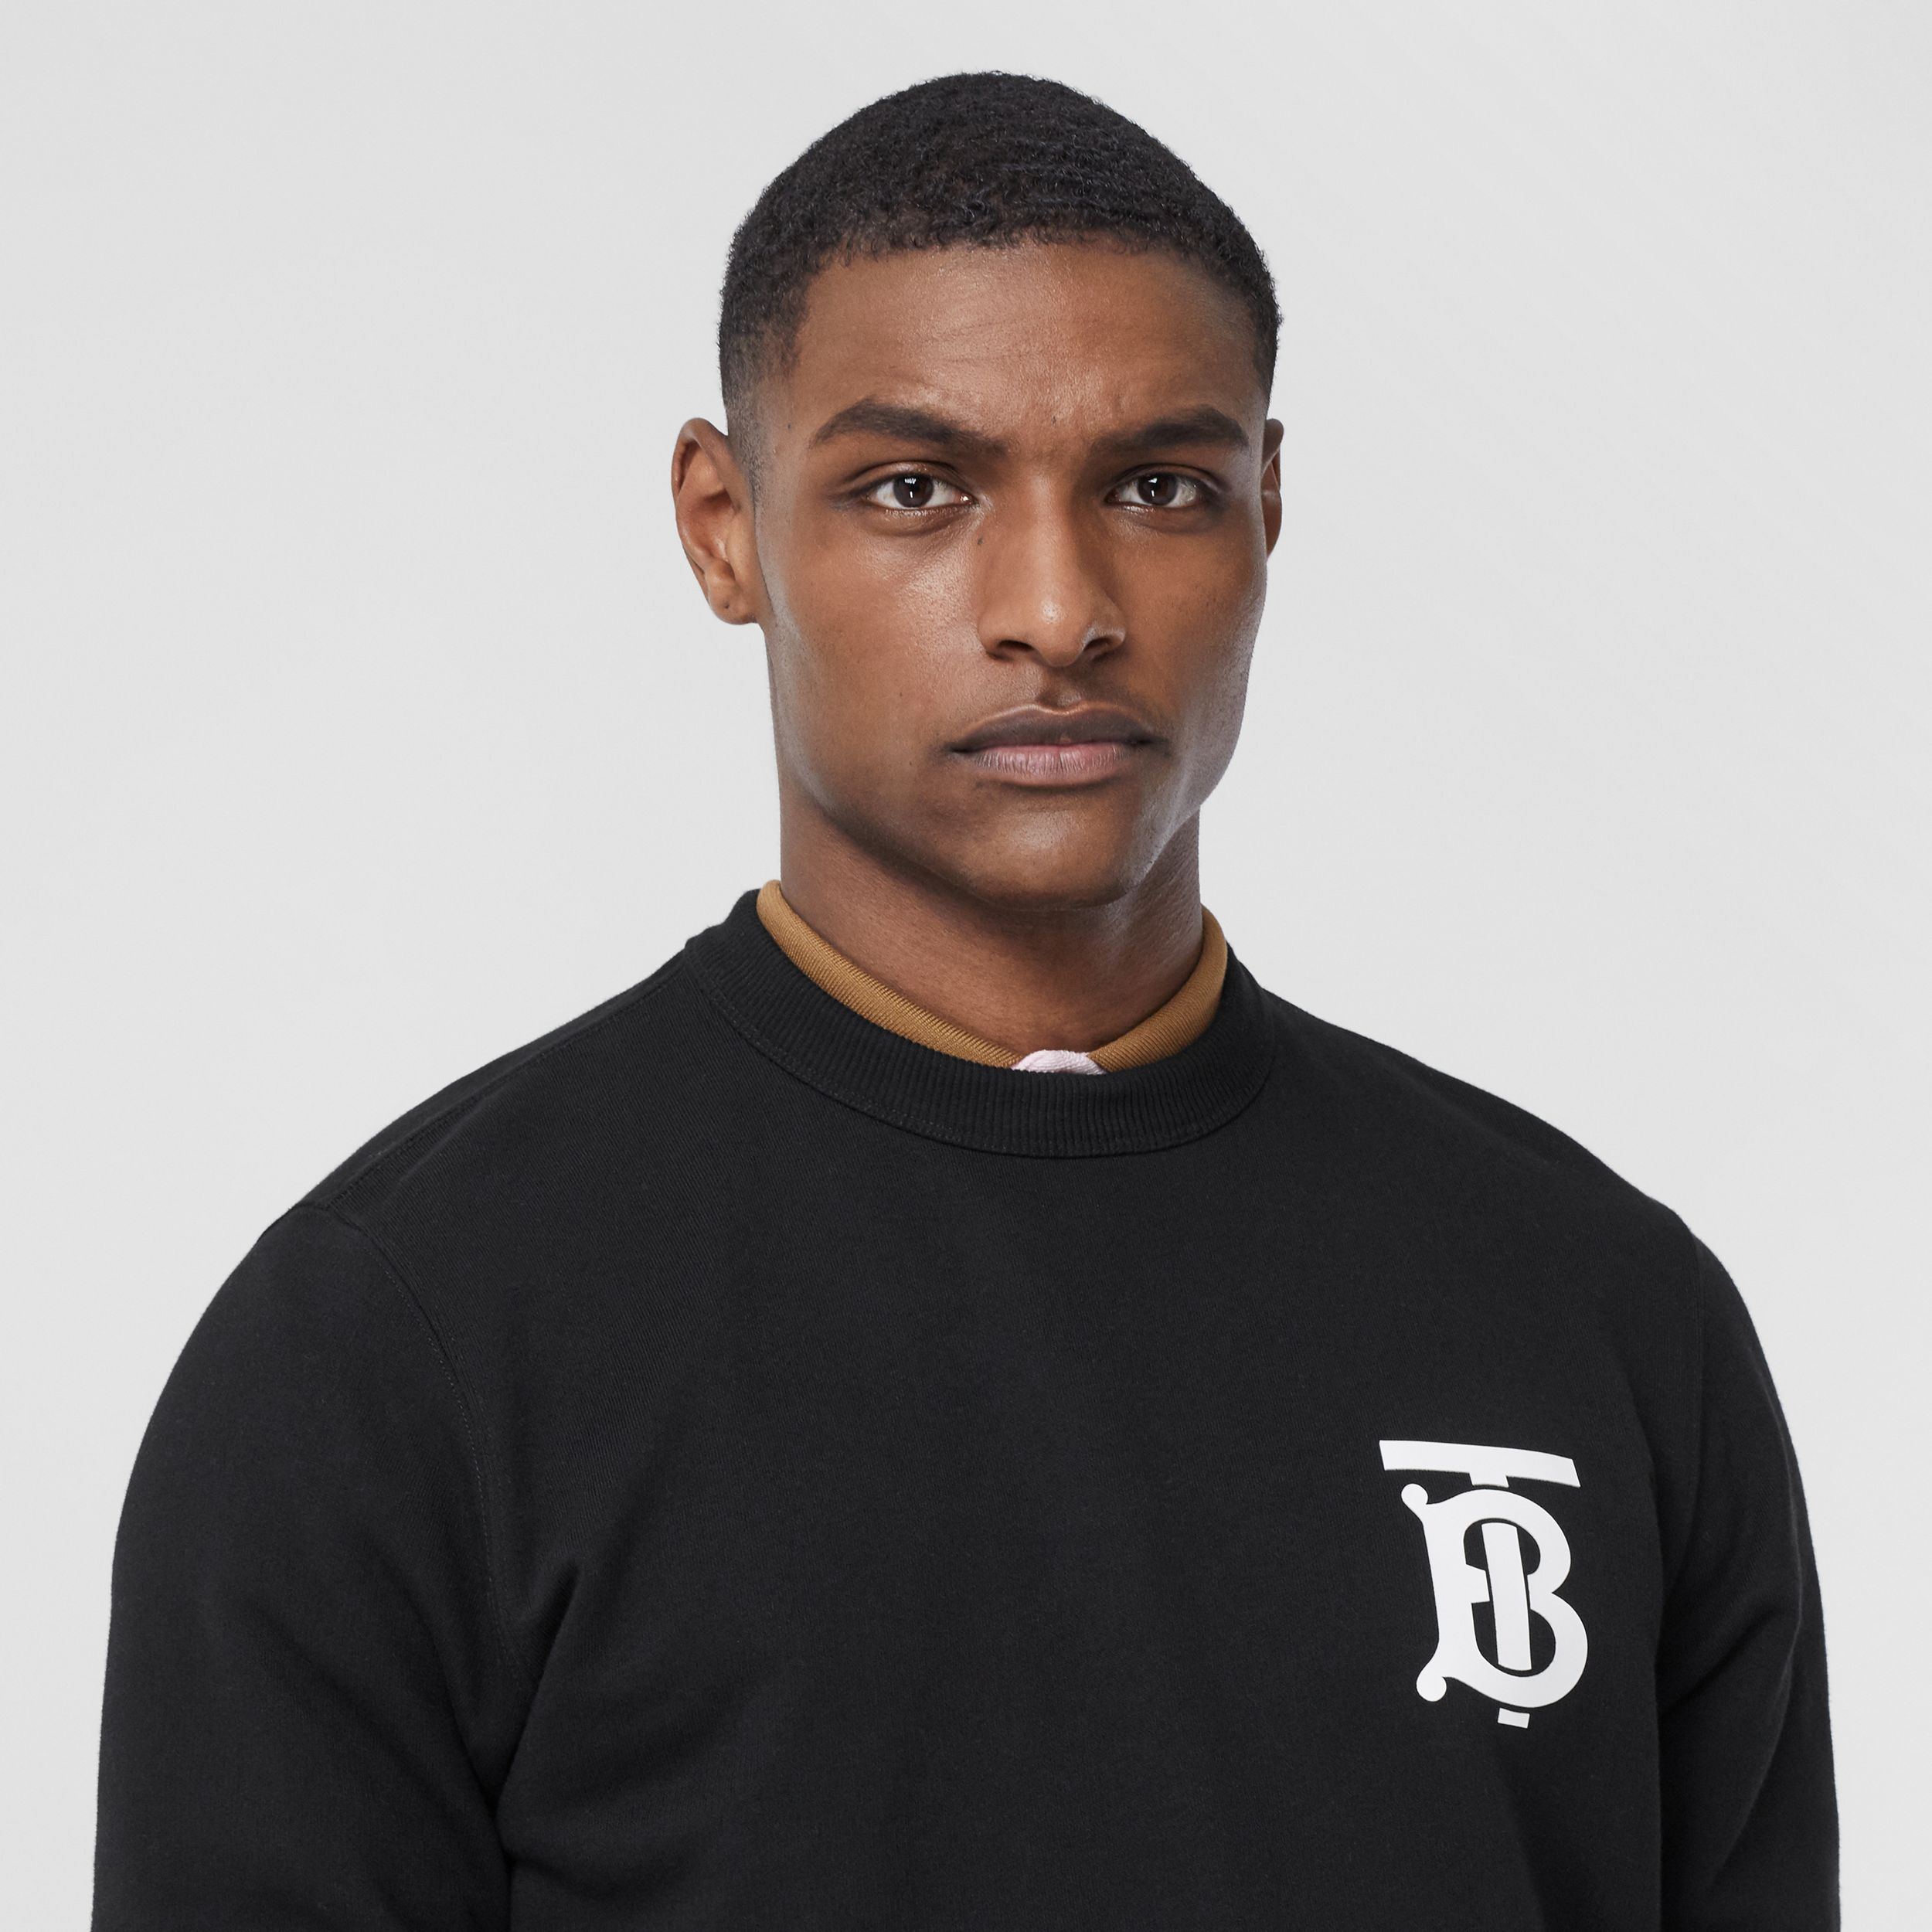 Monogram Motif Cotton Sweatshirt in Black - Men | Burberry Hong Kong S.A.R. - 3